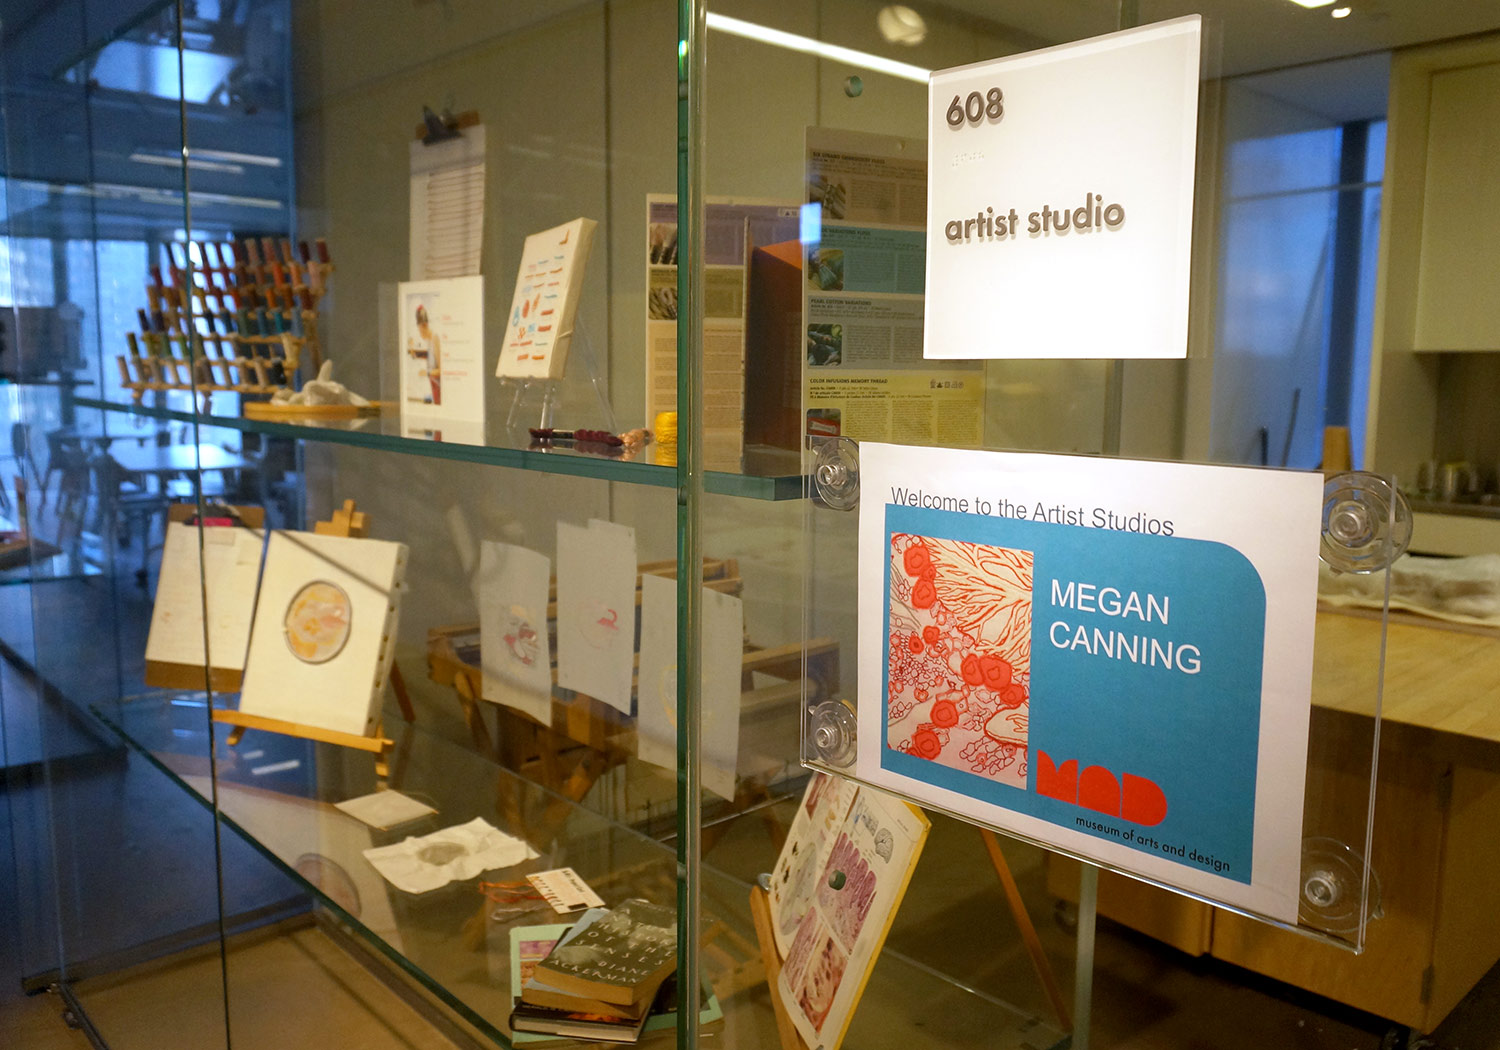 The entrance to the studio is flanked by display shelves for each resident artist to showcase their tools, materials, sources of inspiration, and other work